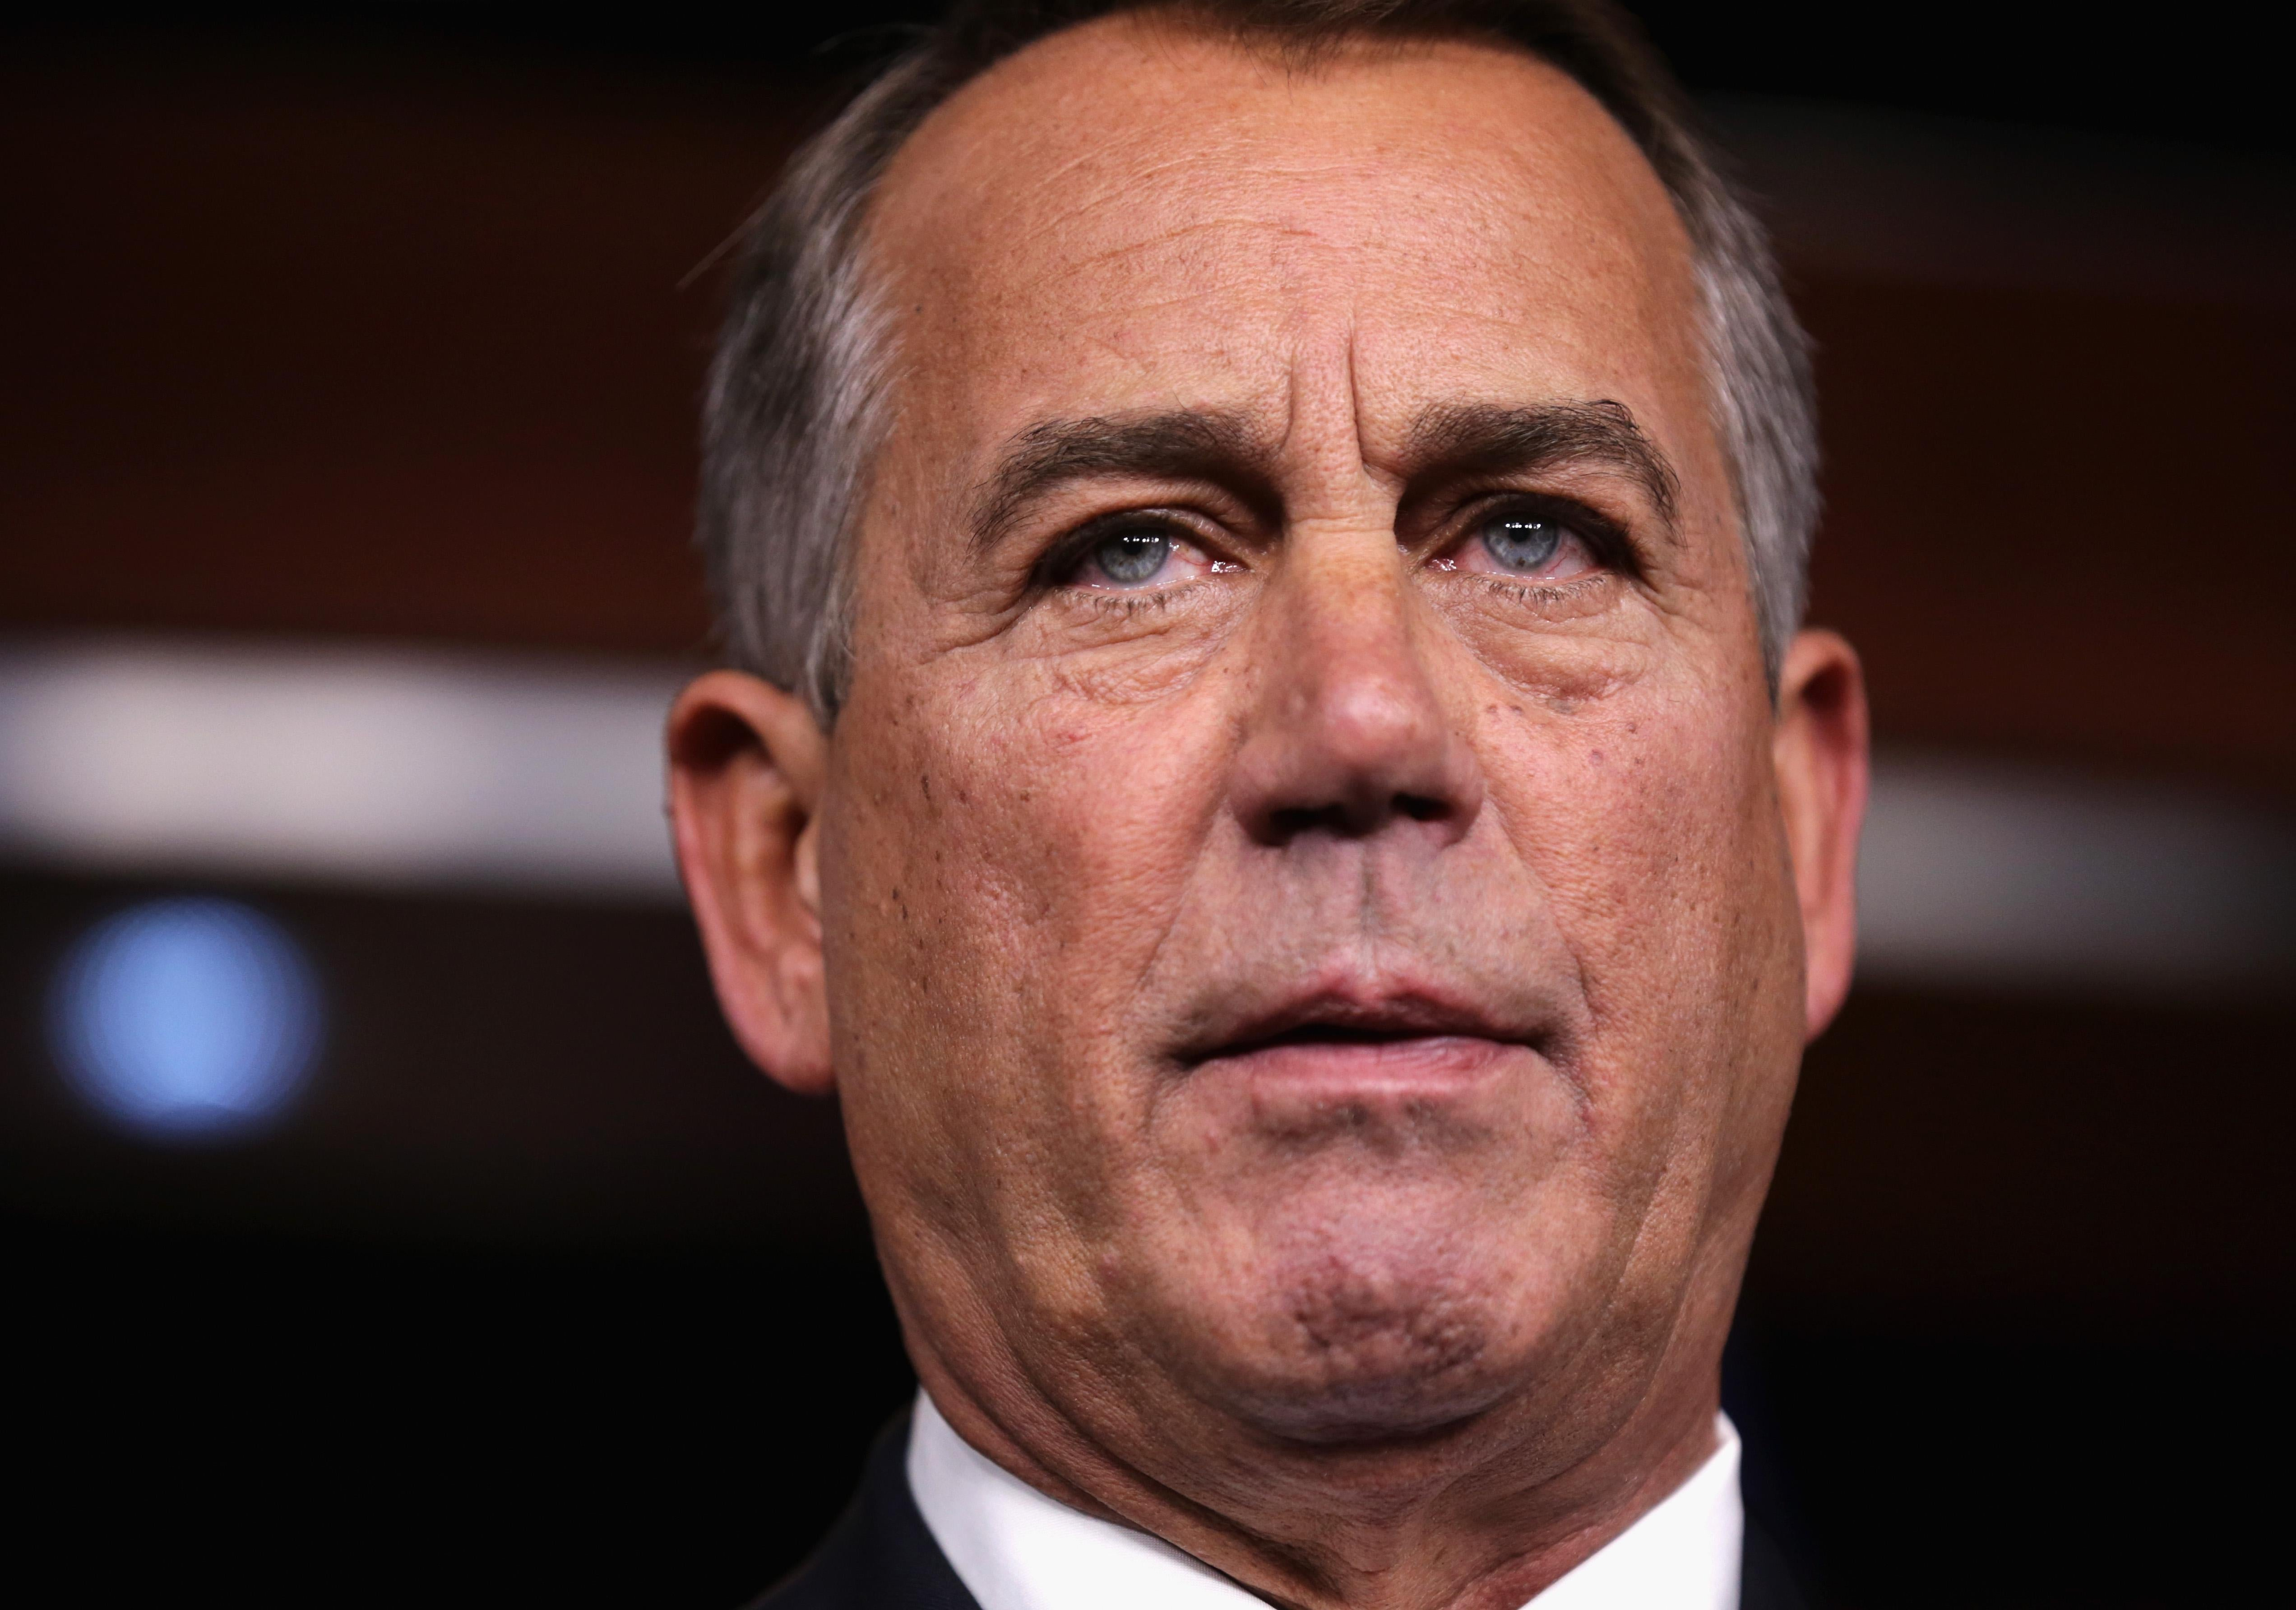 The Media blows it, says Boehner is backing away from immigration reform.